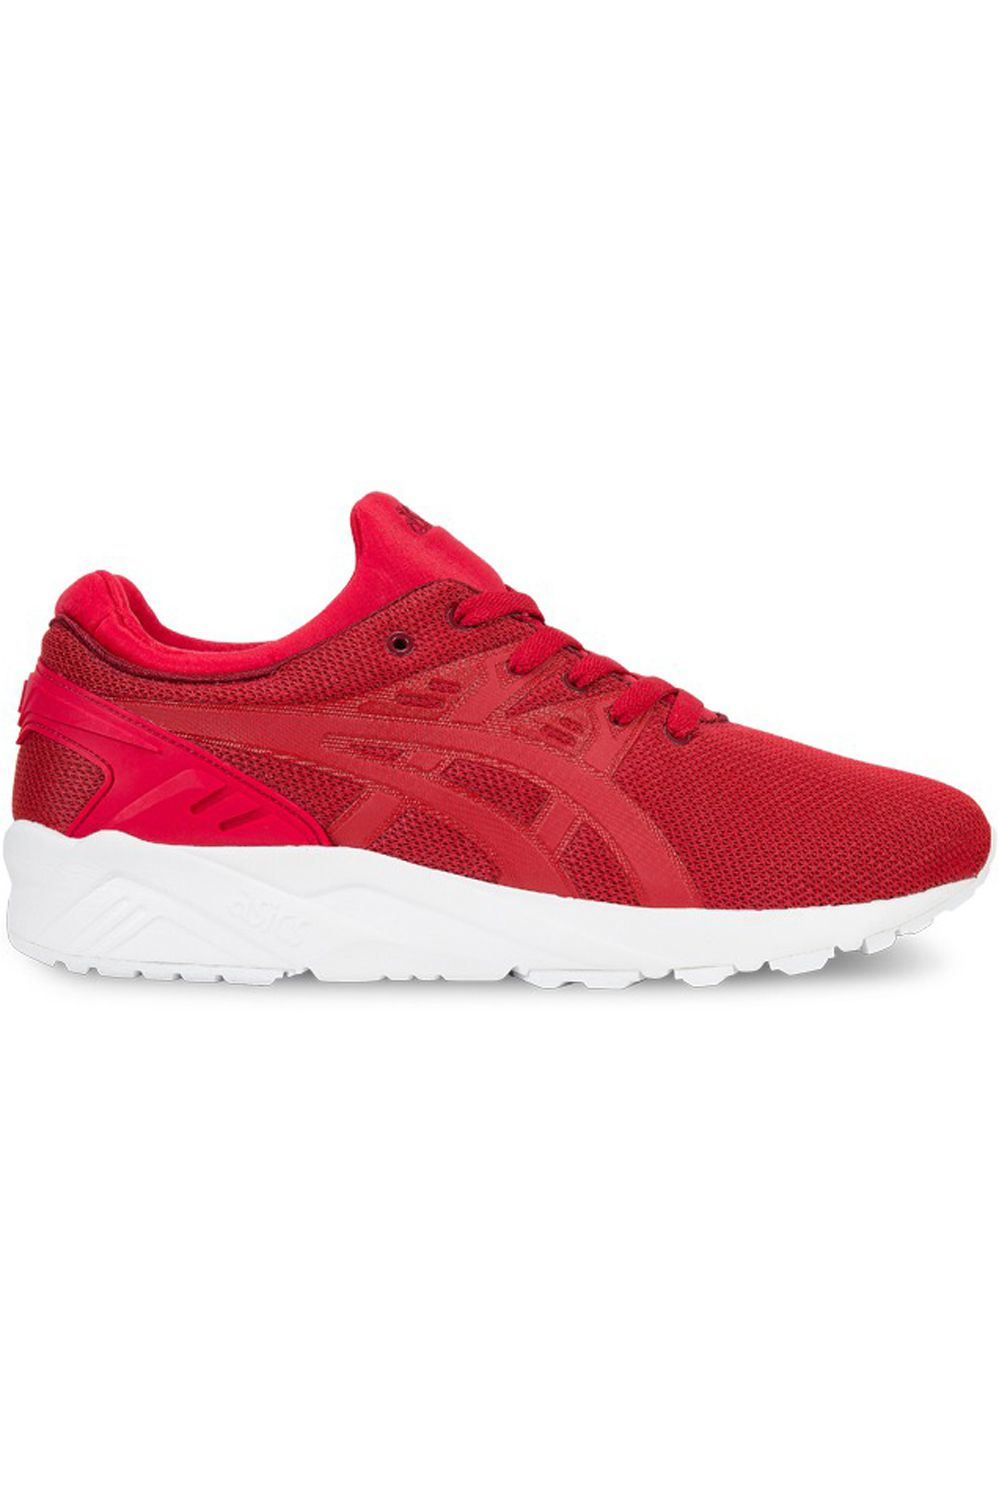 Tenis Asics GEL-KAYANO TRAINER EVO True Red/True Red